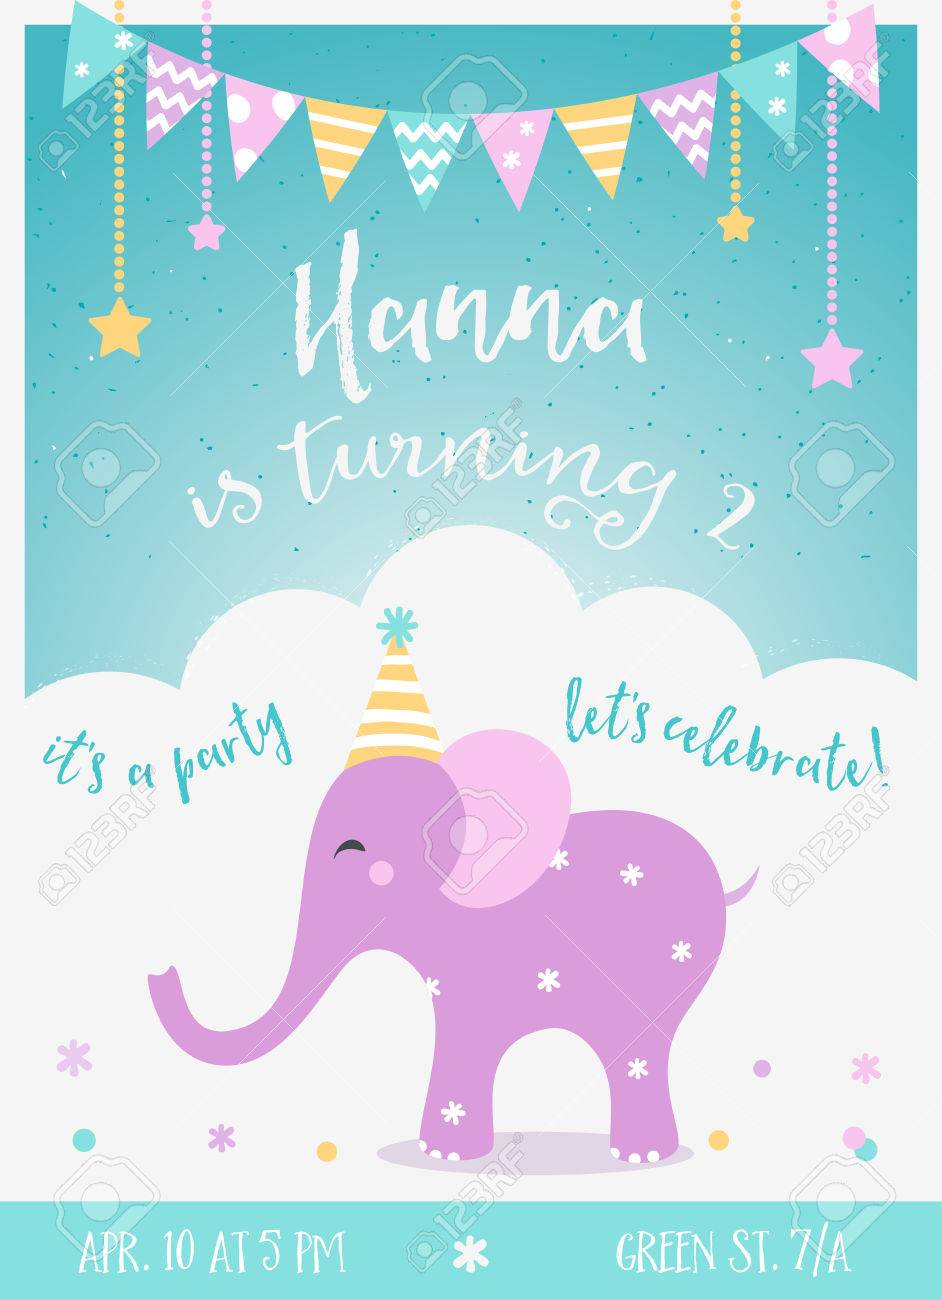 Kids Birthday Party Invitation With Garlands And Baby Elephant Stock Vector